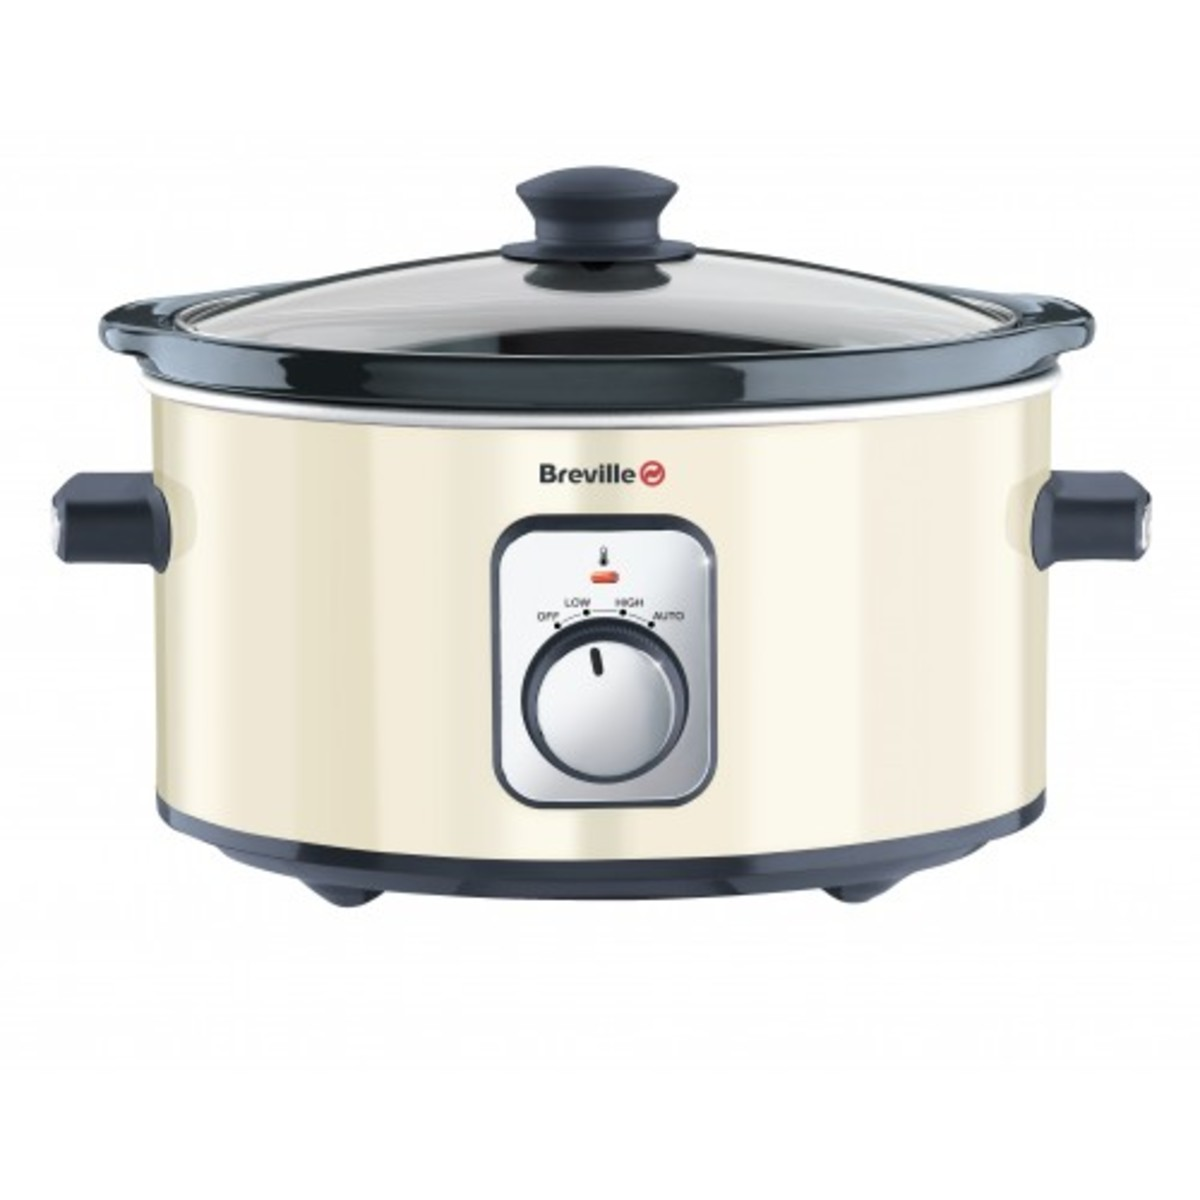 Breville Slow Cooker Review